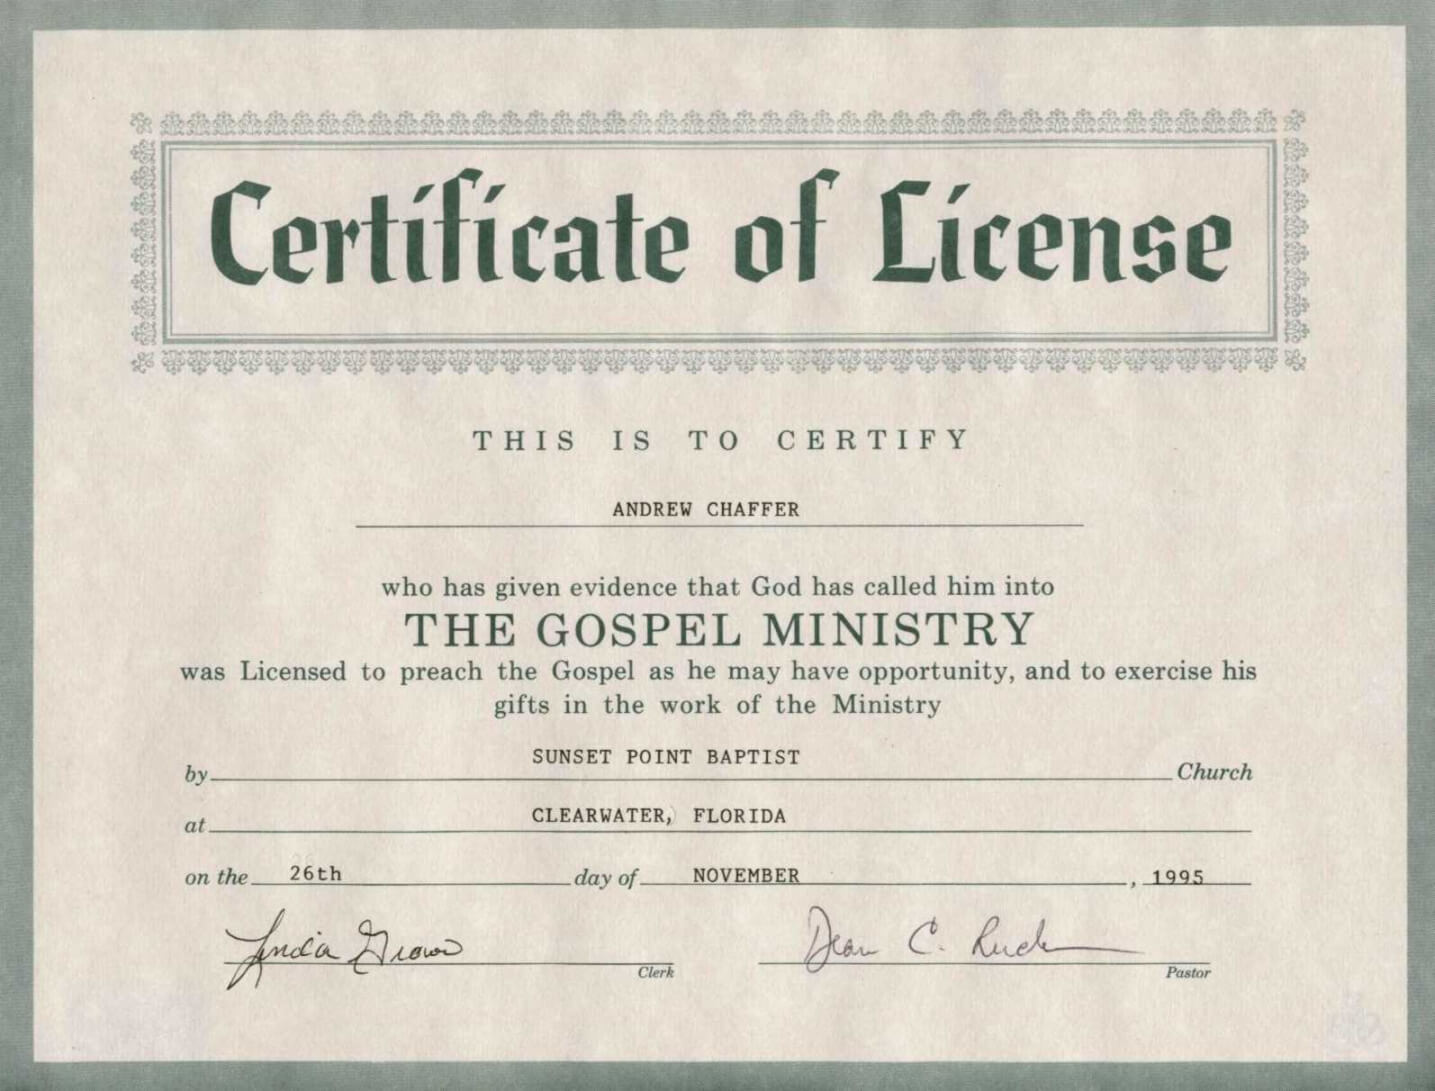 Editable 8 Best Photos Of Printable Certificate Of License Throughout Certificate Of License Template